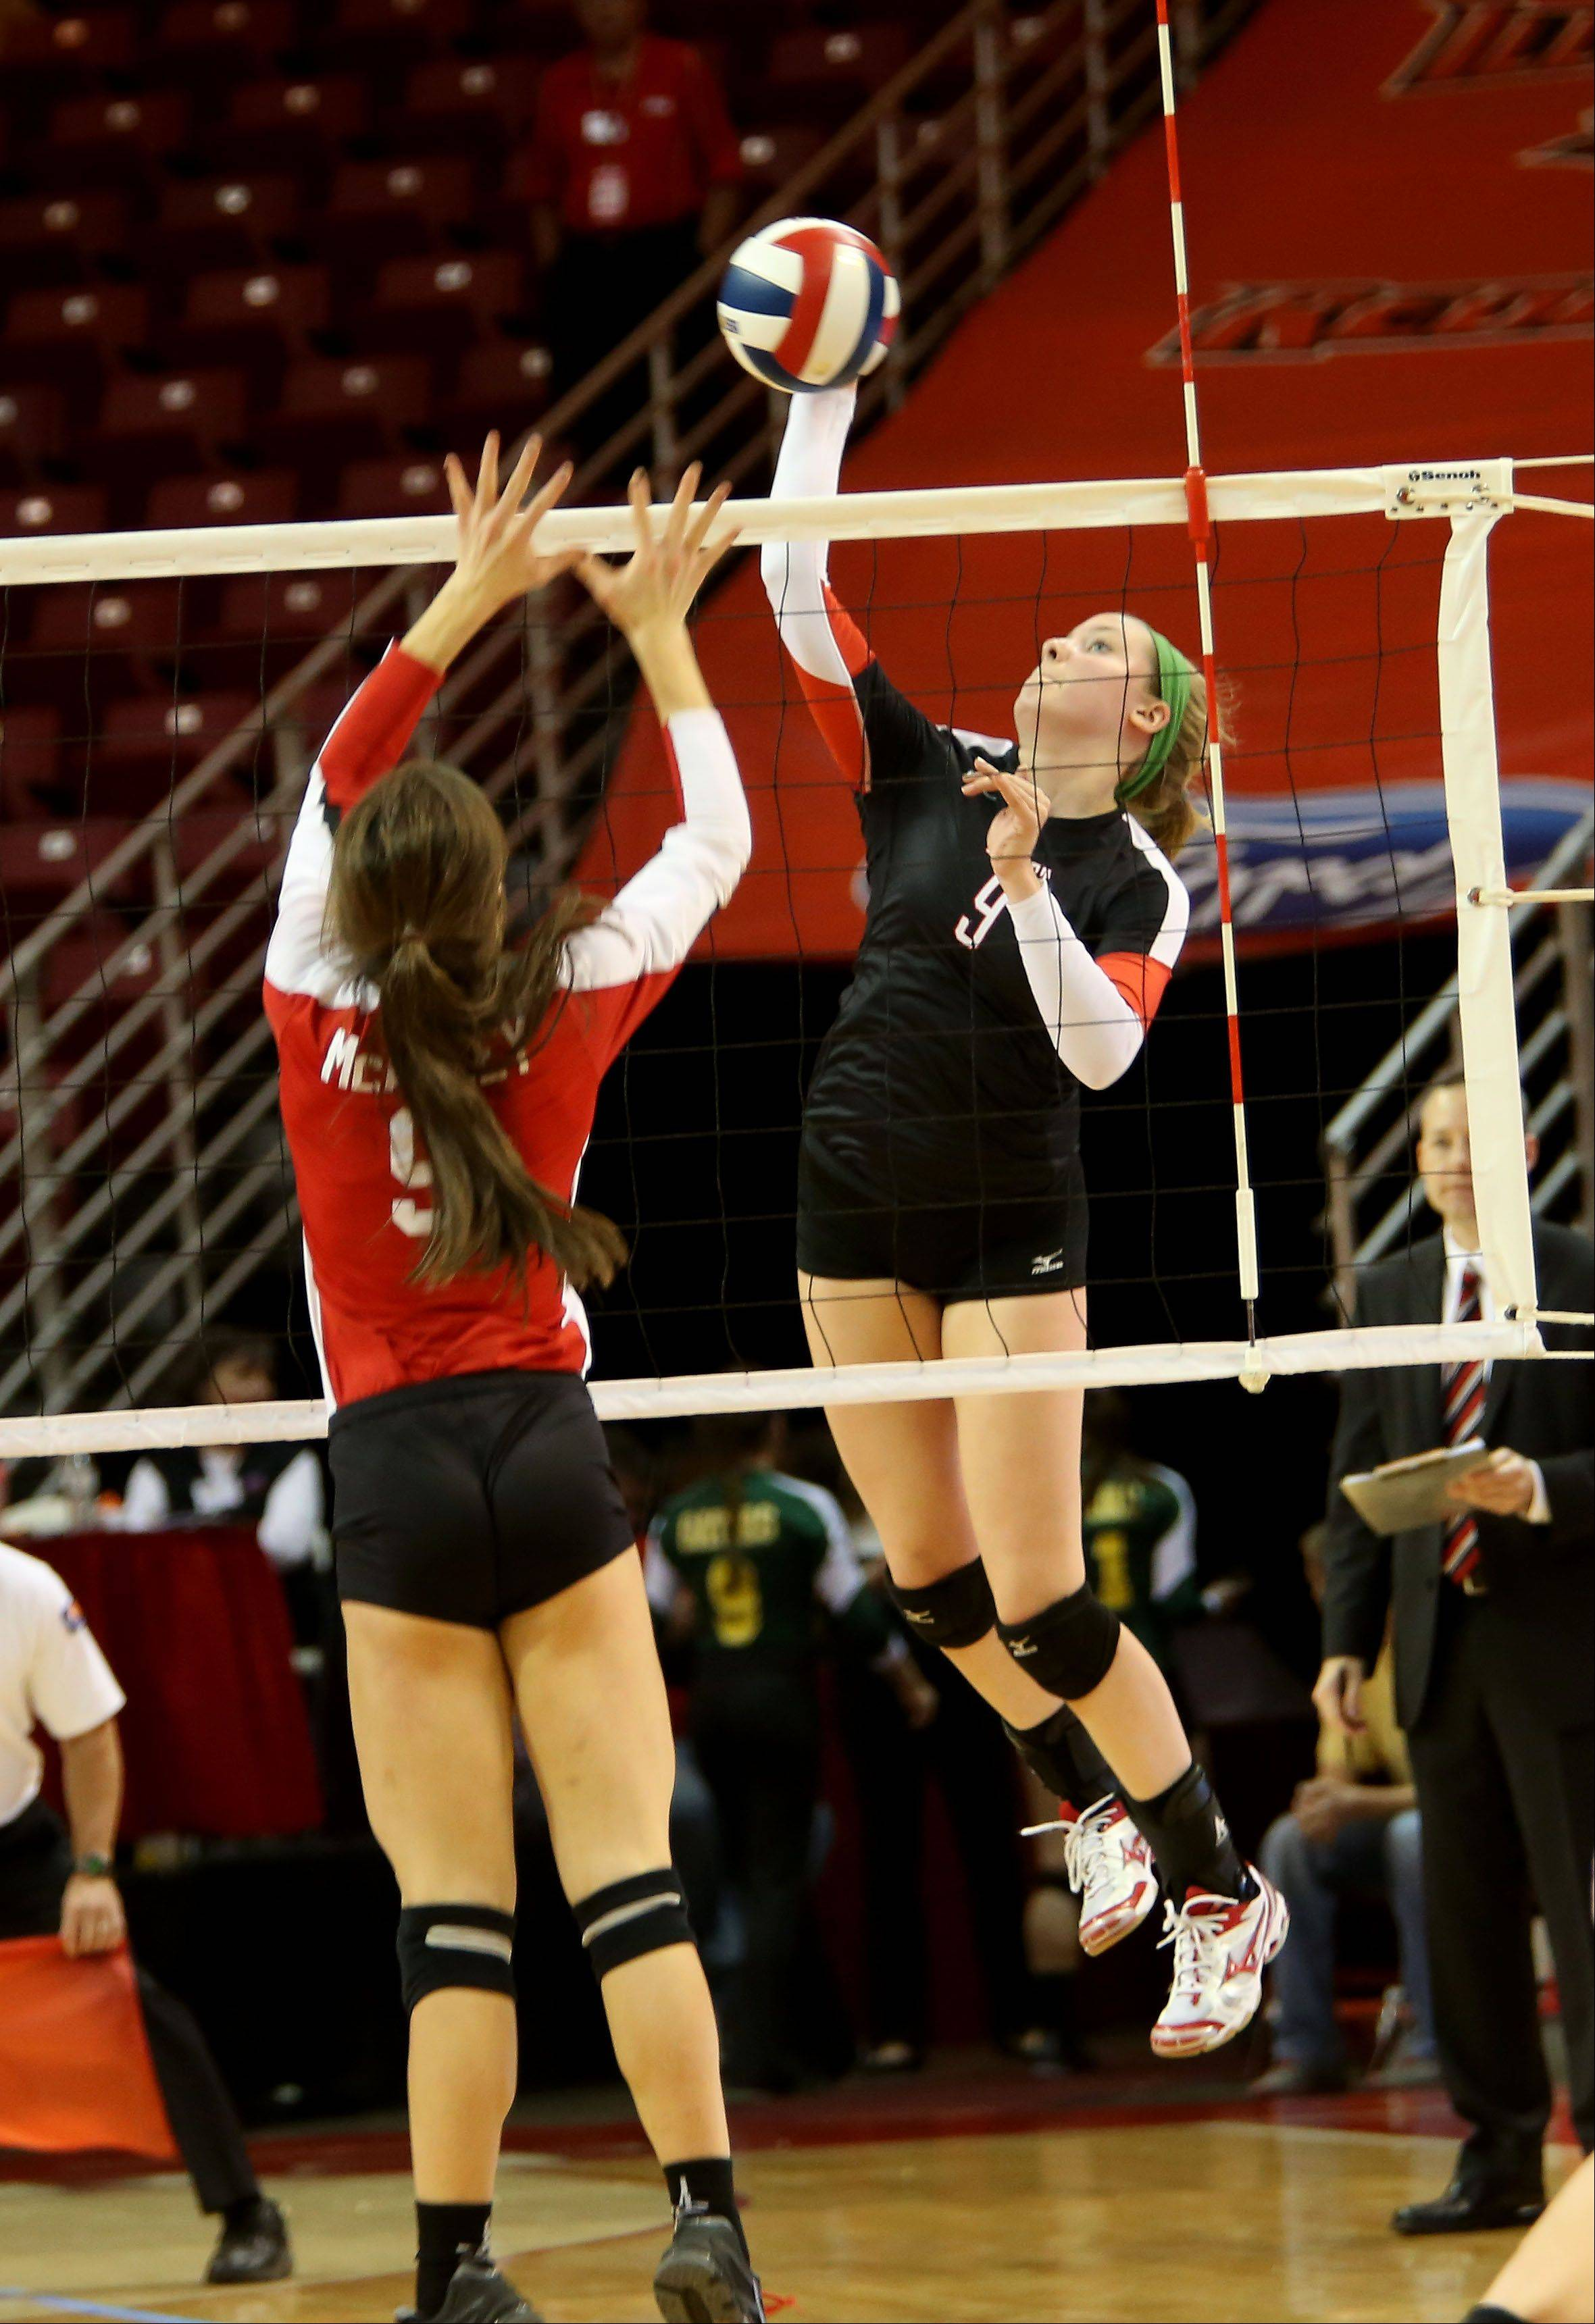 Dana Griffin of Benet goes up to spike the ball against Mother McAuley in the Class 4A championship girls volleyball match on Saturday in Normal.